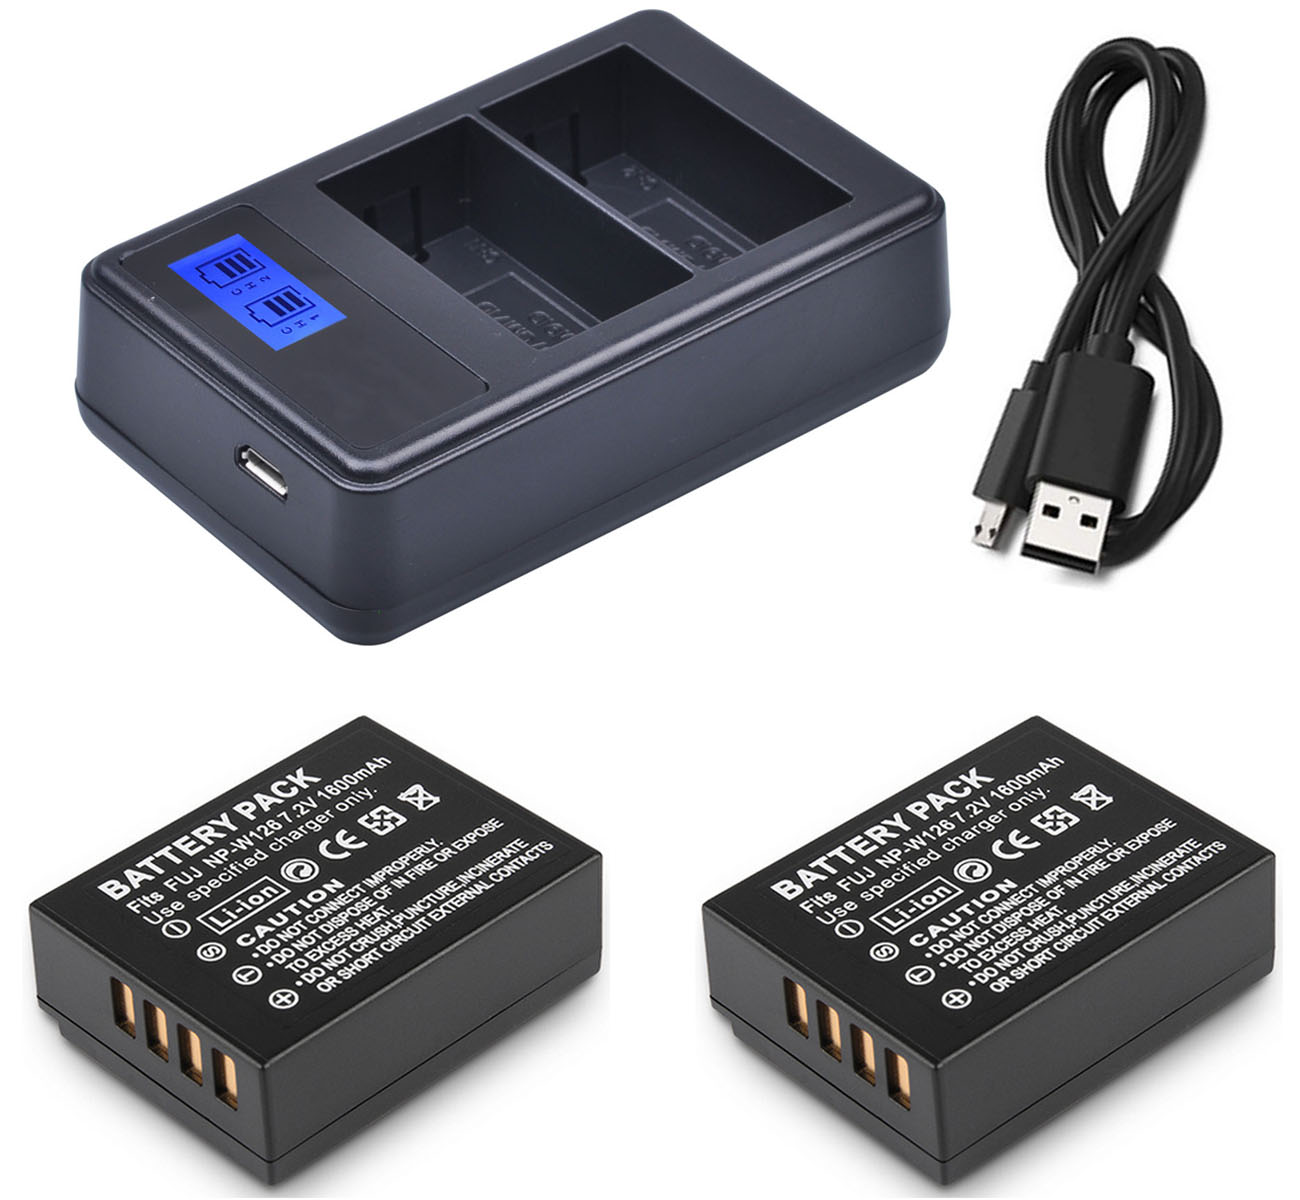 Battery (2-Pack) + Charger for Fujifilm FinePix HS30EXR, HS33EXR, <font><b>HS35EXR</b></font>, HS50EXR, HS30, HS33, HS35, HS50 EXR Digital Camera image